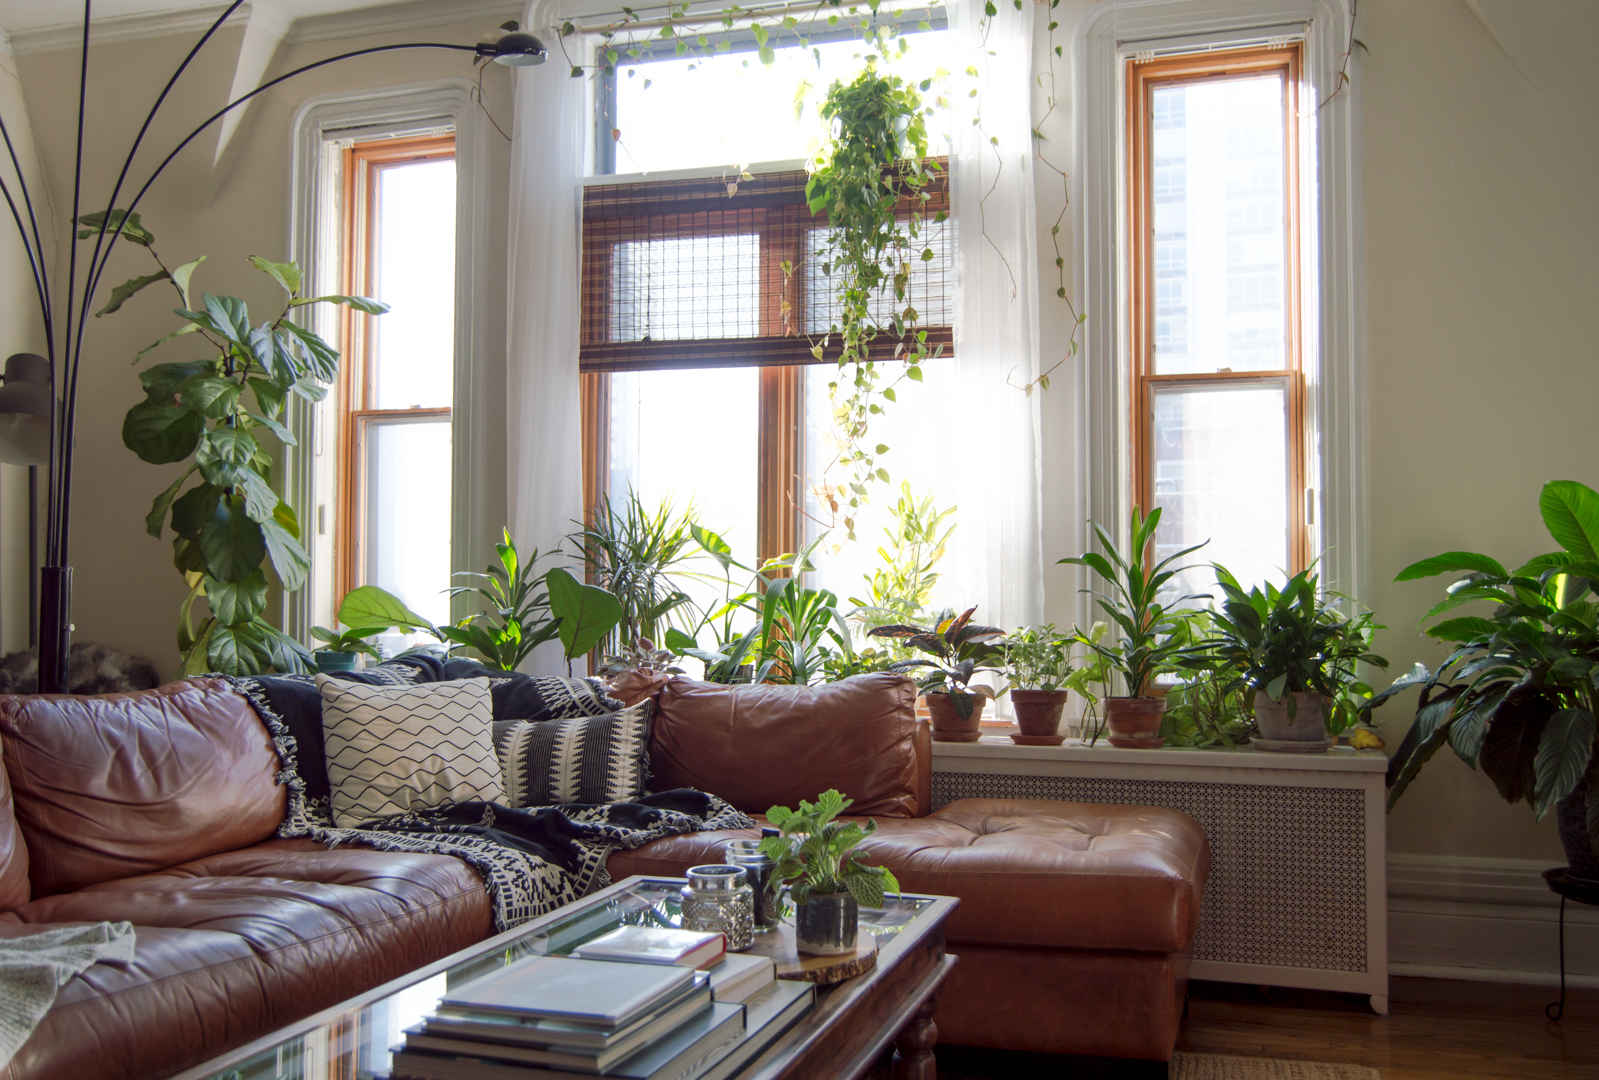 An Avid DIYer Brings the Outdoors In With Plants and Rustic ...